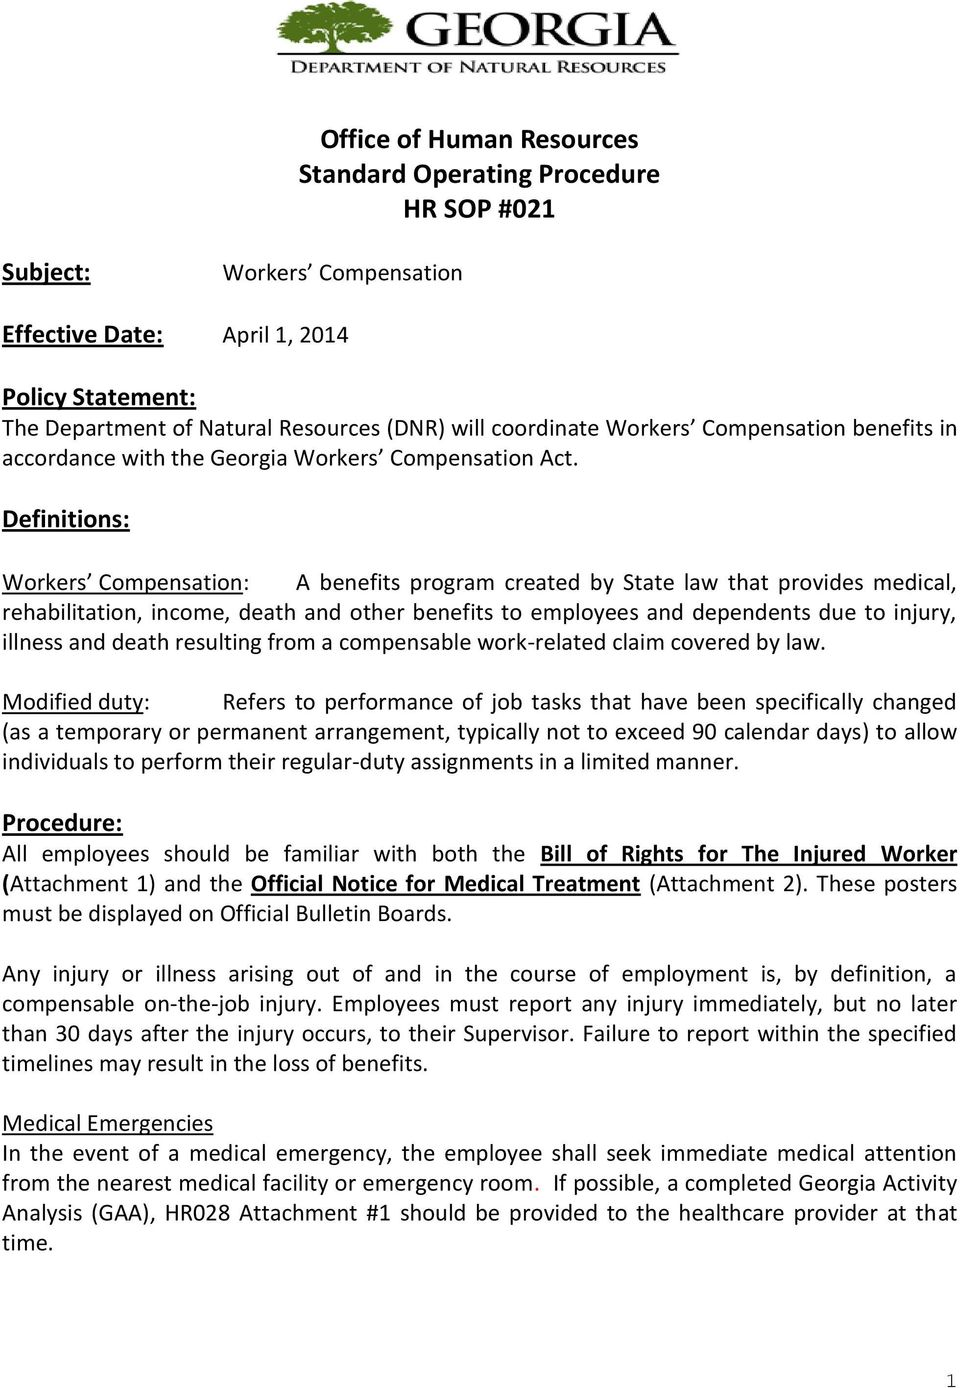 Office of Human Resources Standard Operating Procedure HR SOP #021 - PDF